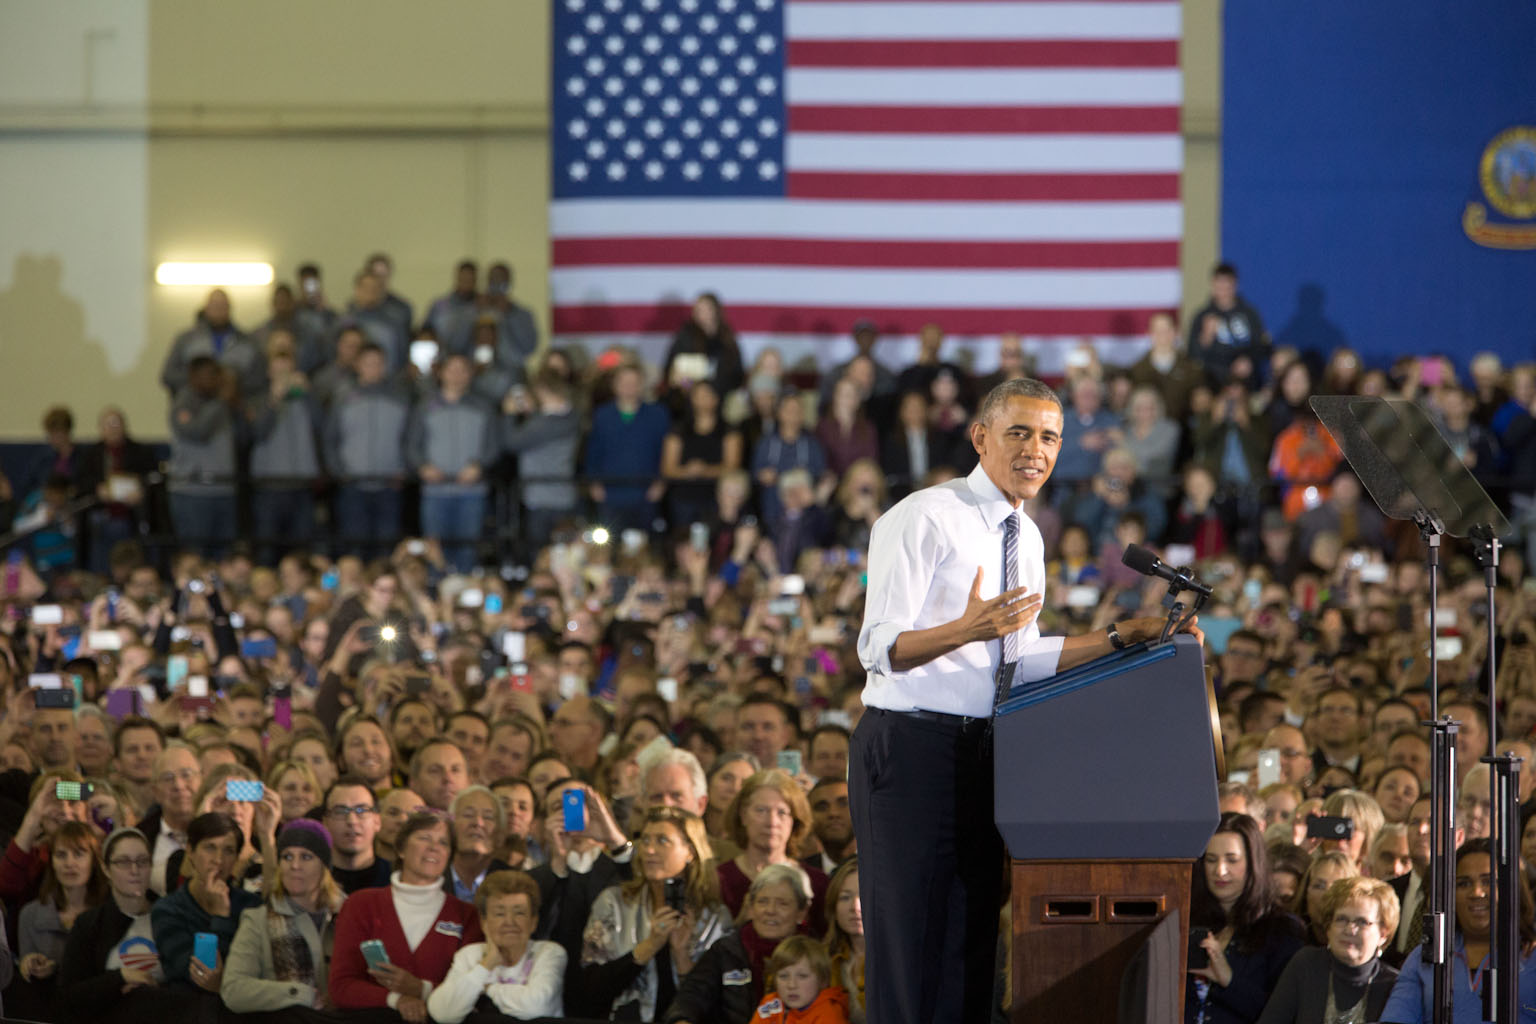 President Obama delivers remarks at Boise State University